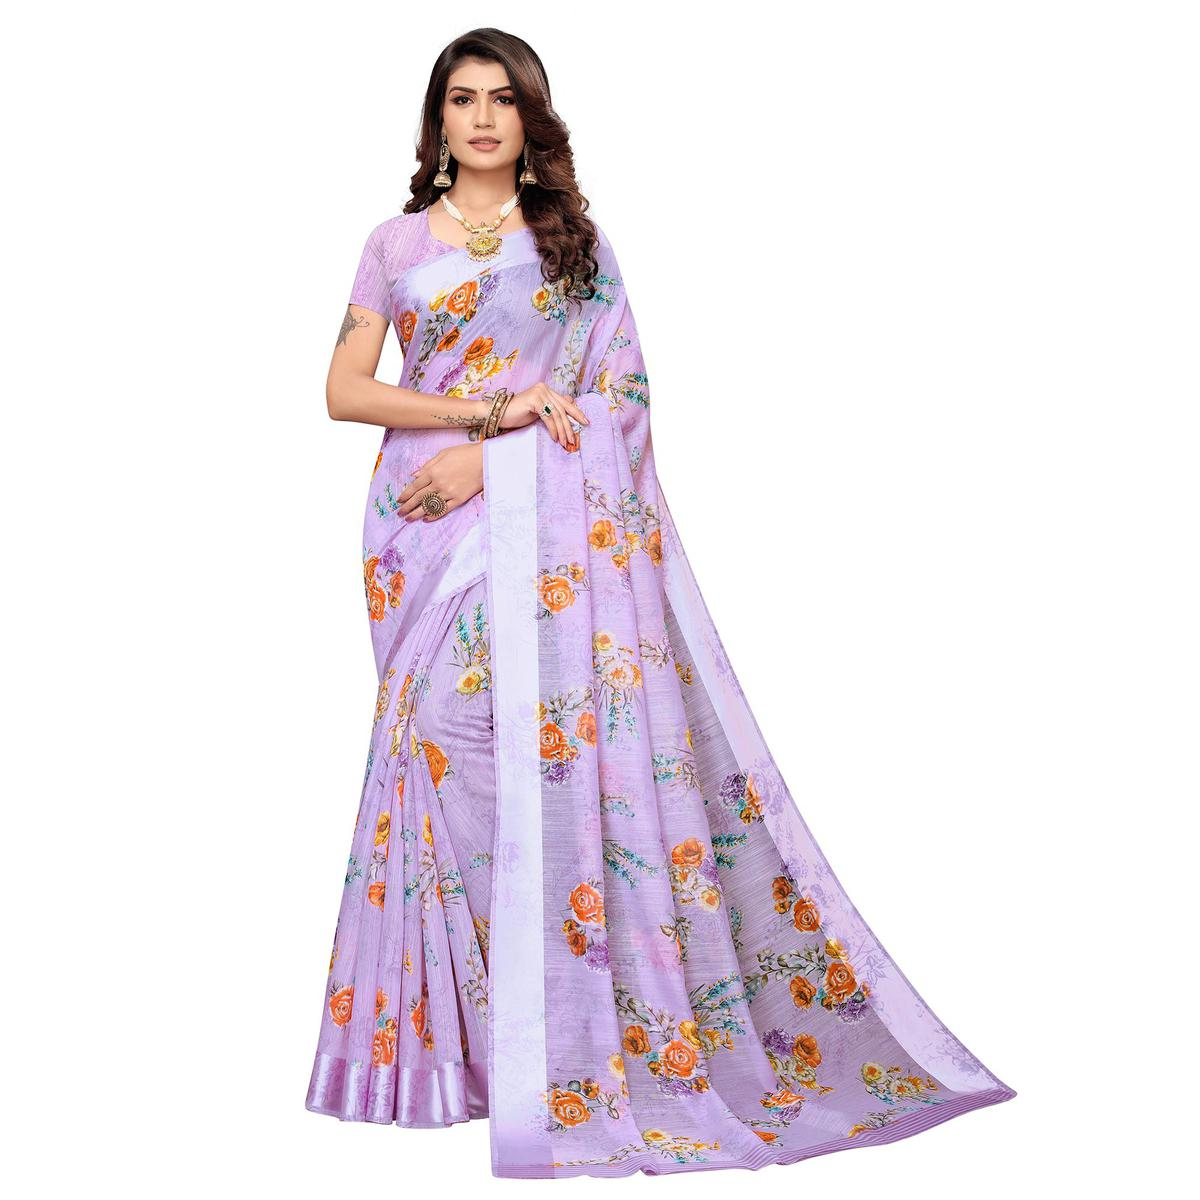 Exceptional Lavender Colored Casual Wear Printed Satin Saree